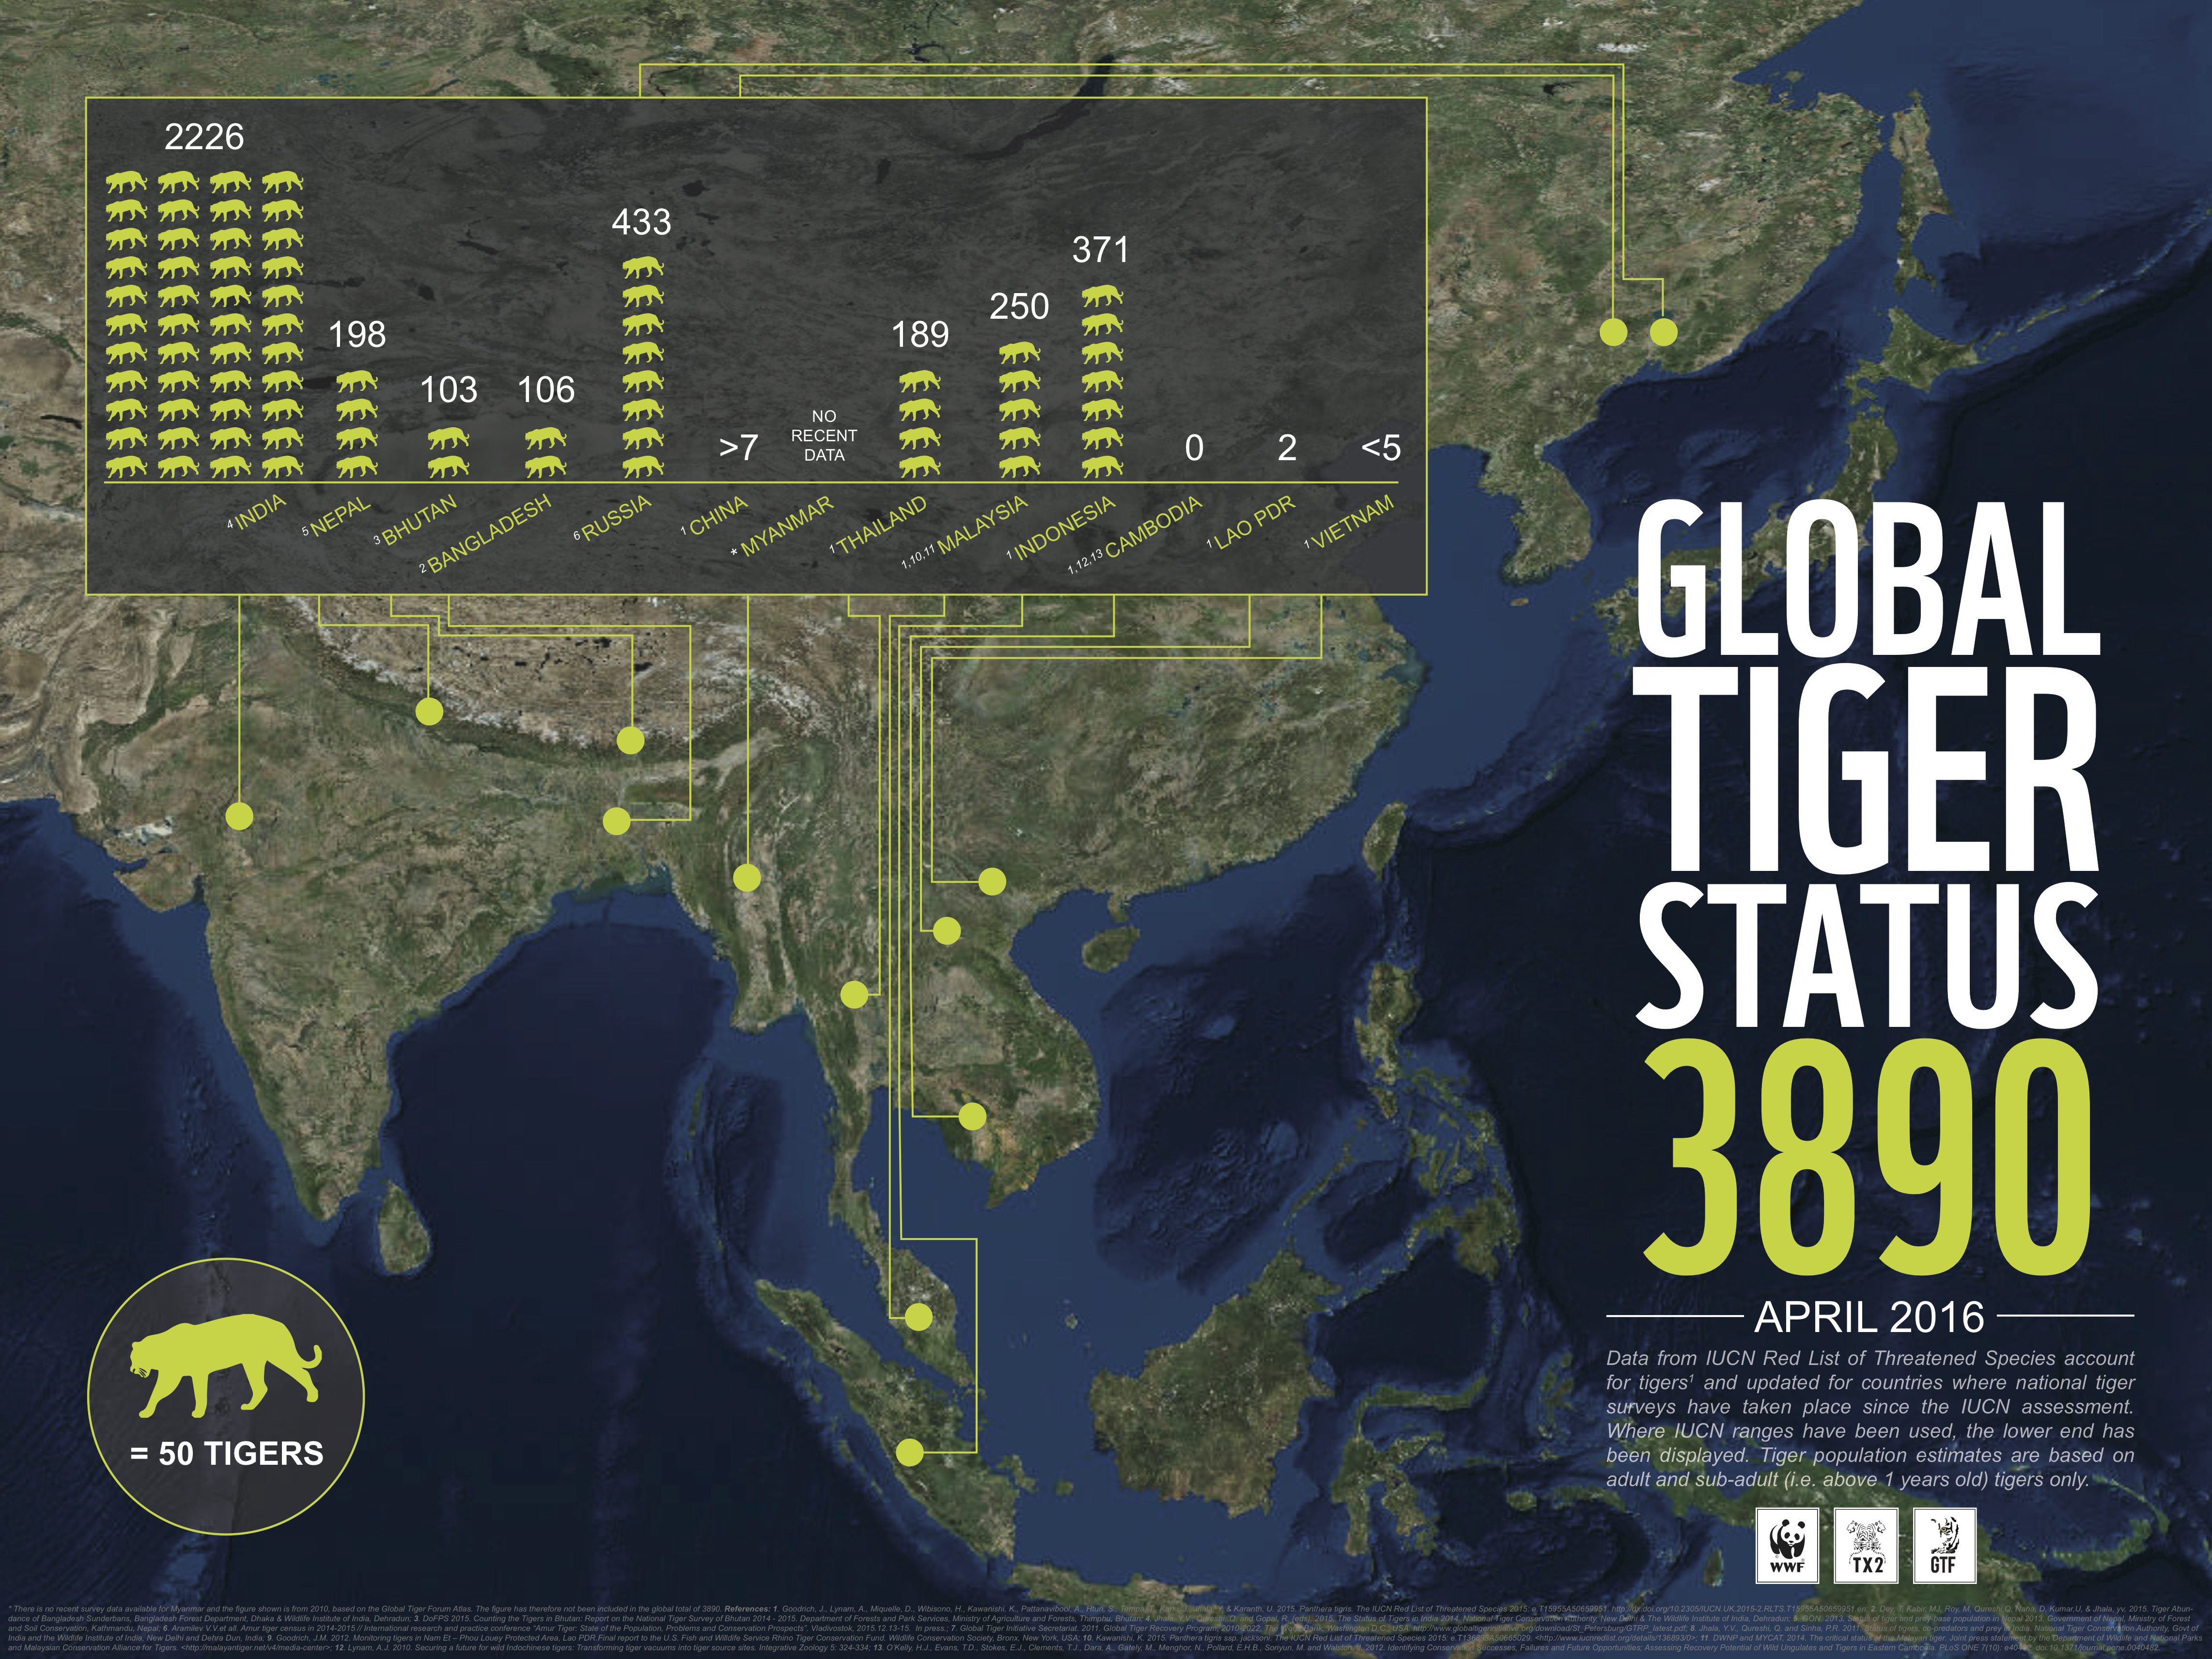 embargoed_infographic__global_tiger_status___april_2016__high_resolution__1